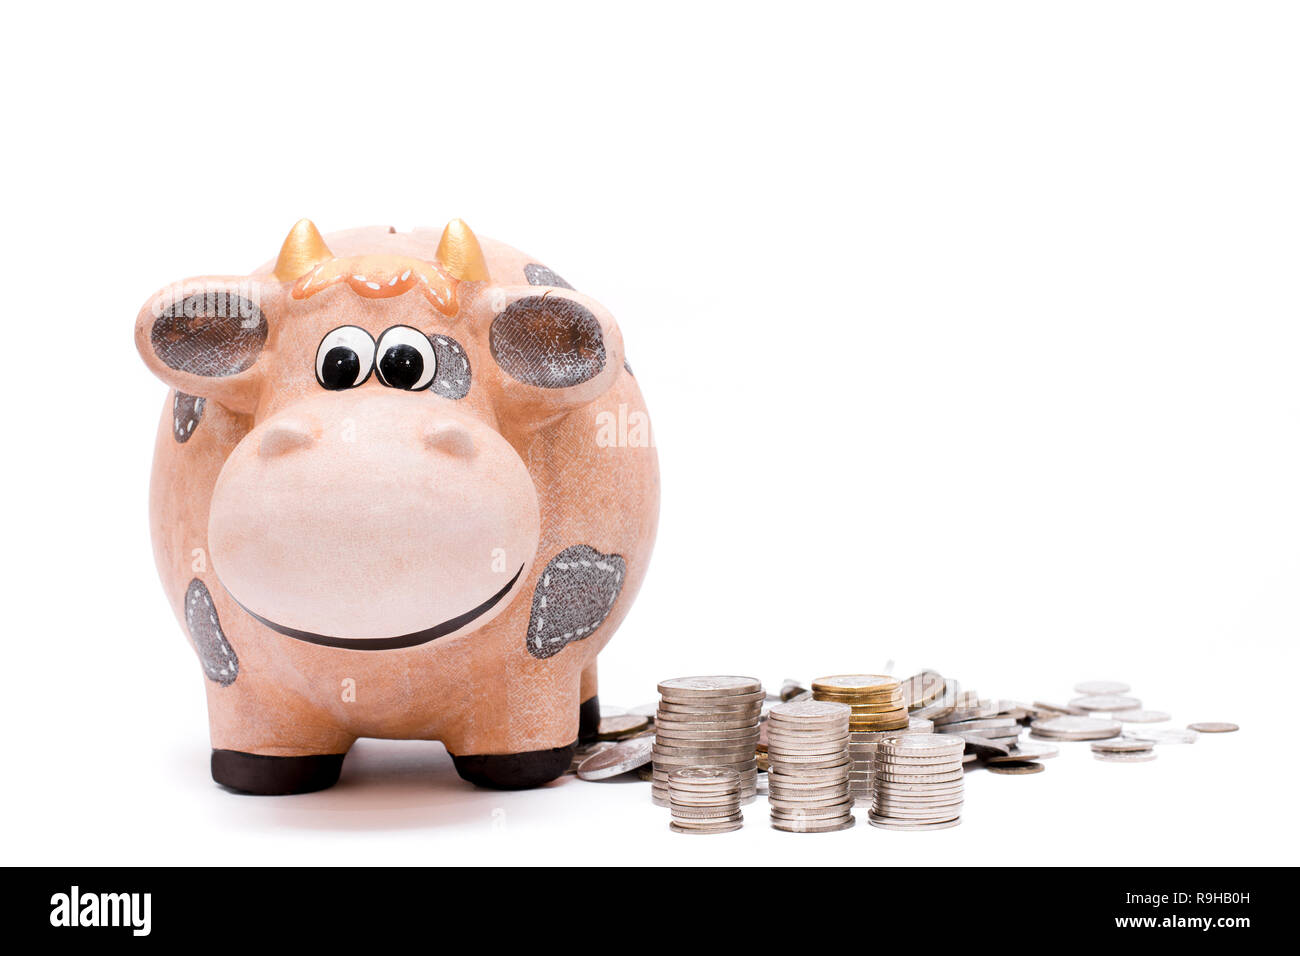 Piggy bank and coins stacked up over white background. Stock Photo